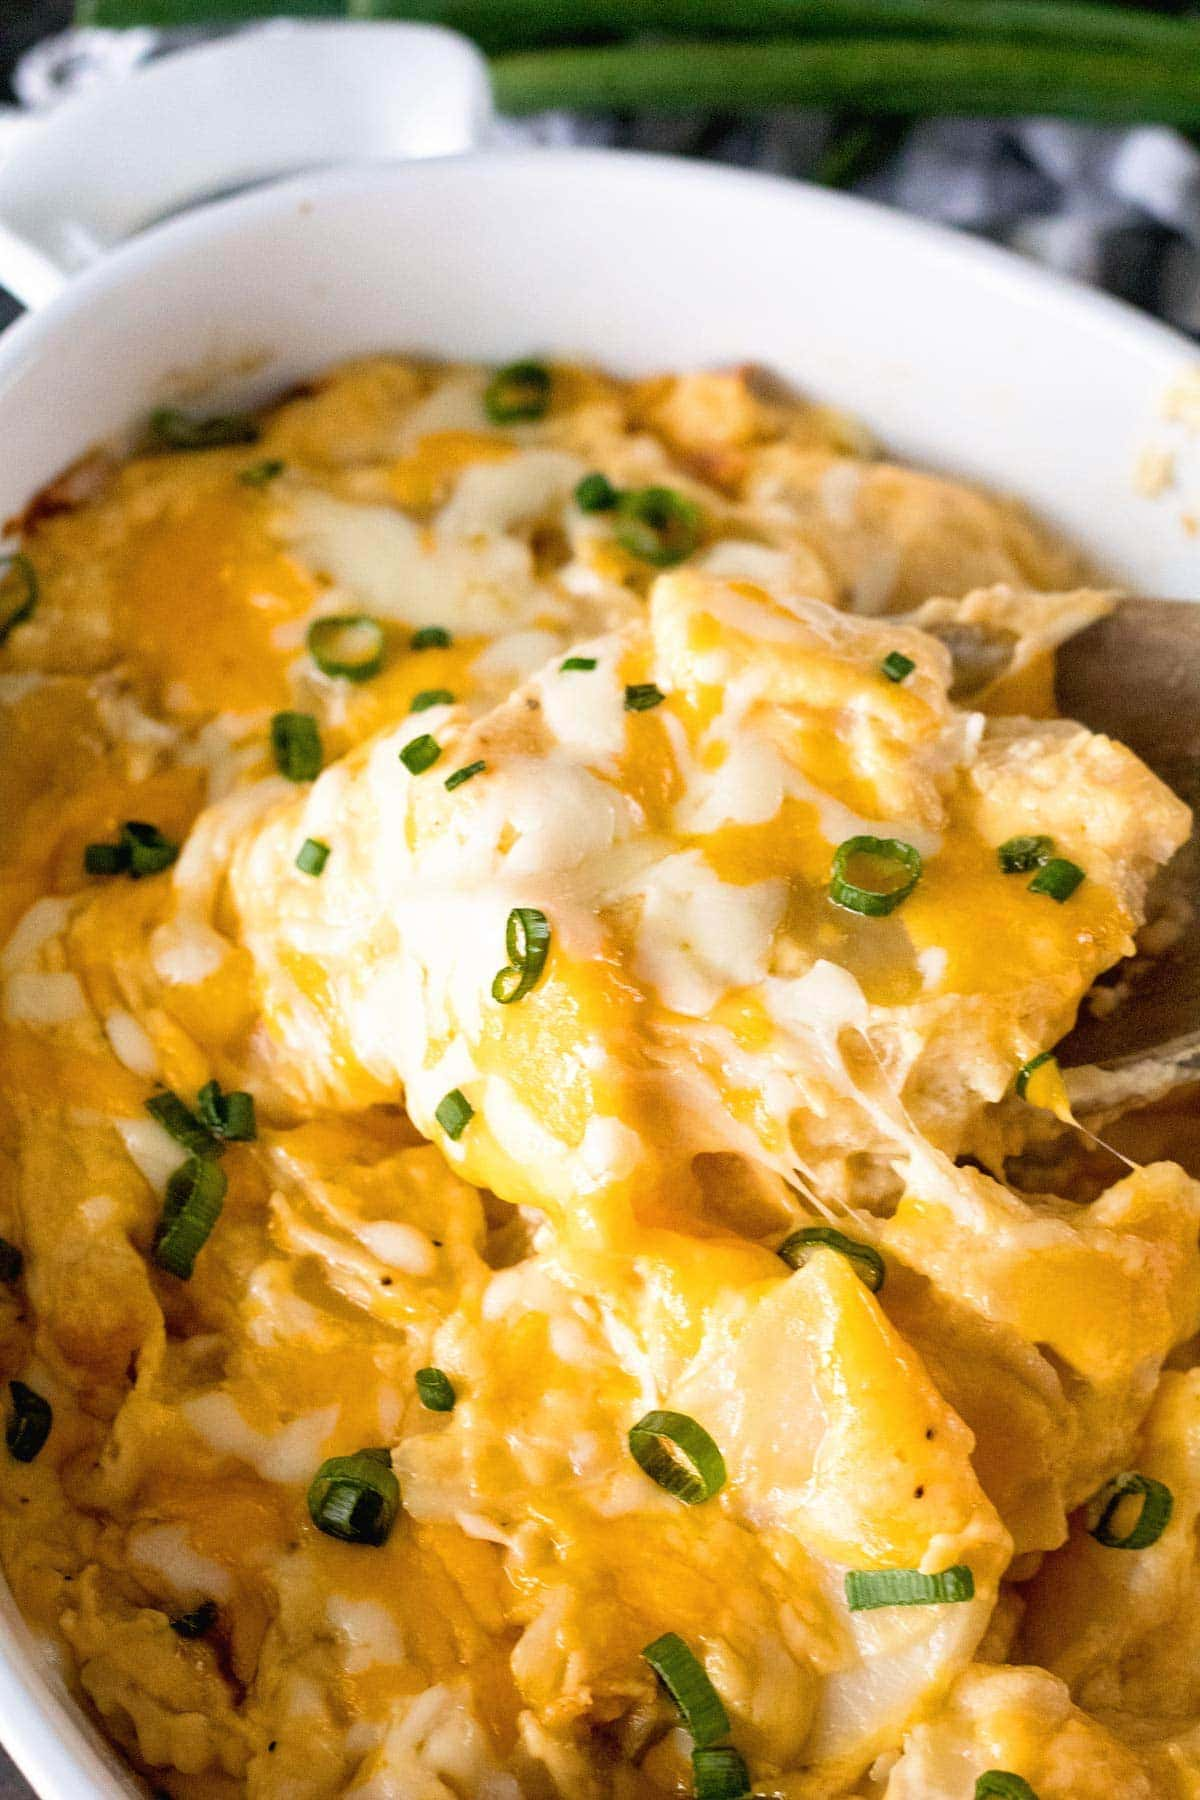 Cheesy Homemade Scalloped Poatoes Recipe is Perfect for Dinner!